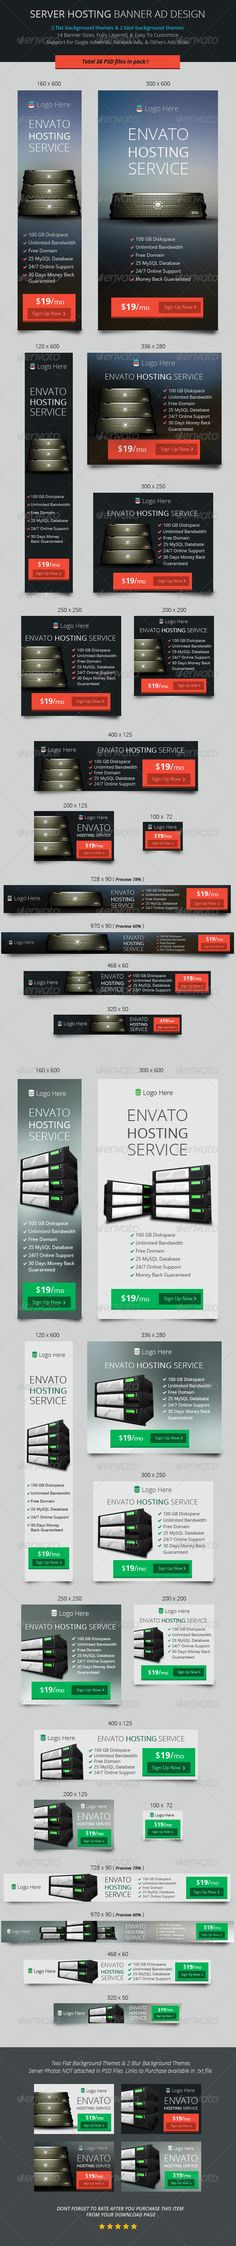 Server Hosting Banner ad Design - Banners & Ads Web Template PSD. Download here: http://graphicriver.net/item/server-hosting-banner-ad-design/6962983?s_rank=49&ref=yinkira